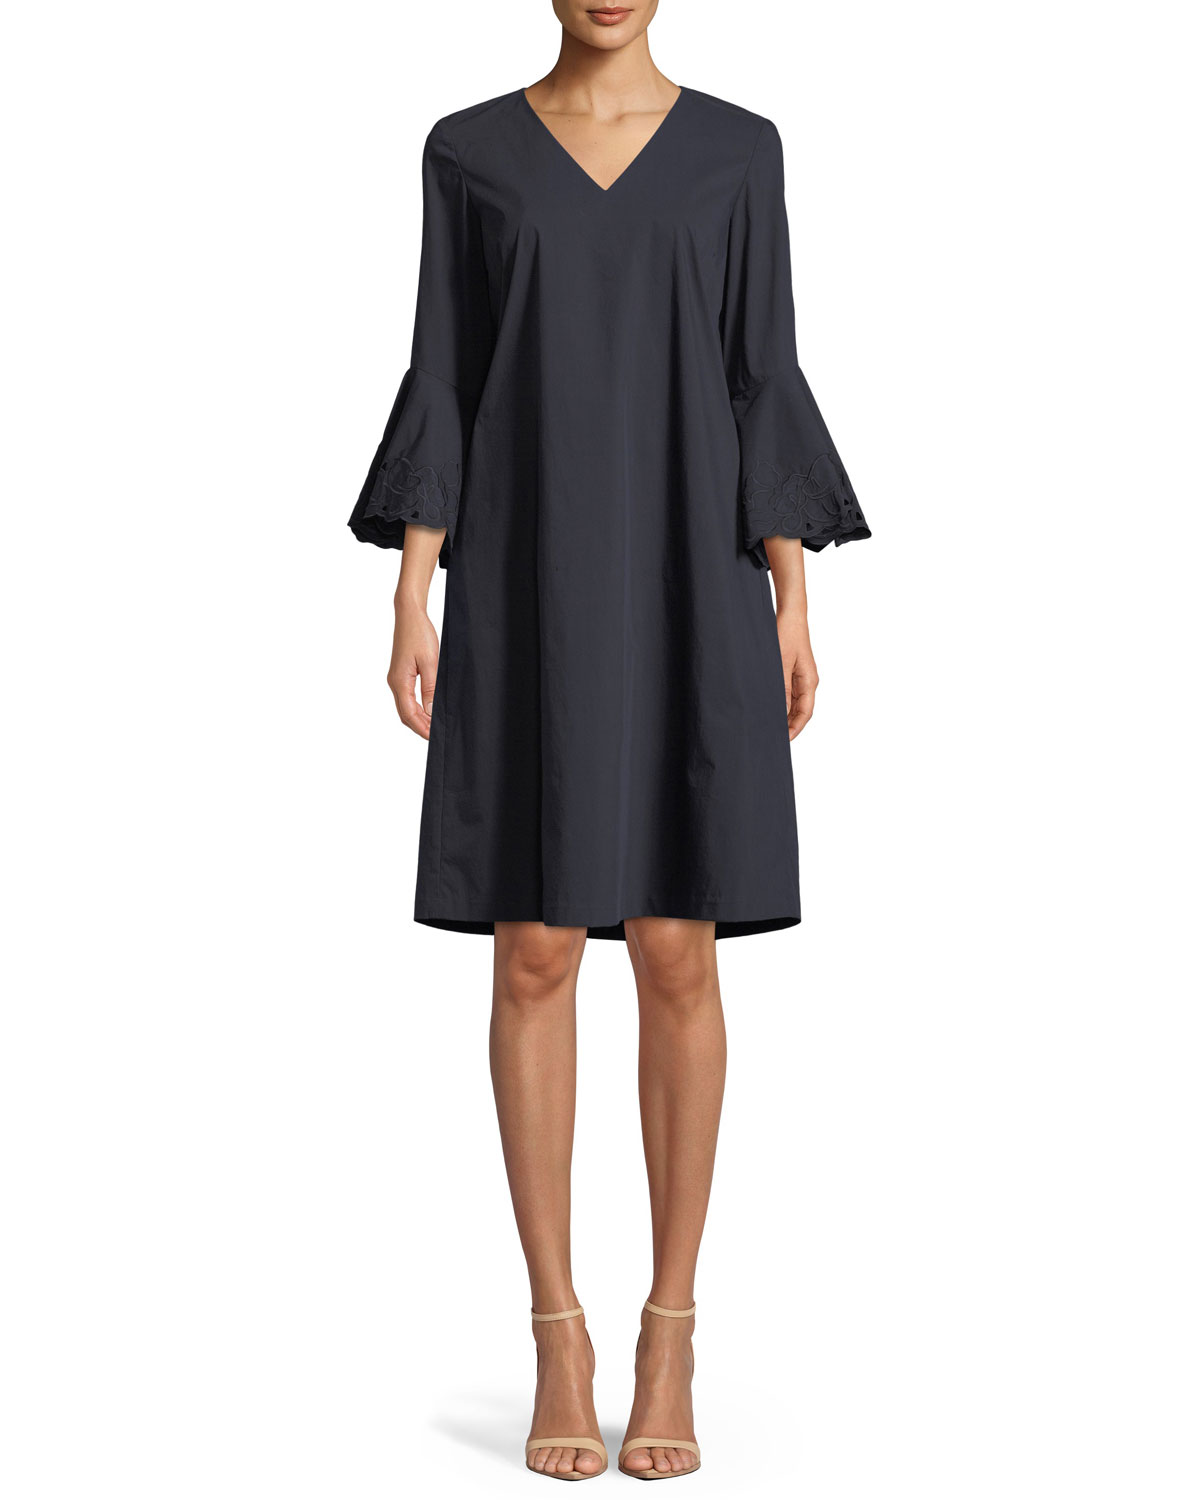 Holly Expedition-Cloth Ruffle-Cuff Shift Dress